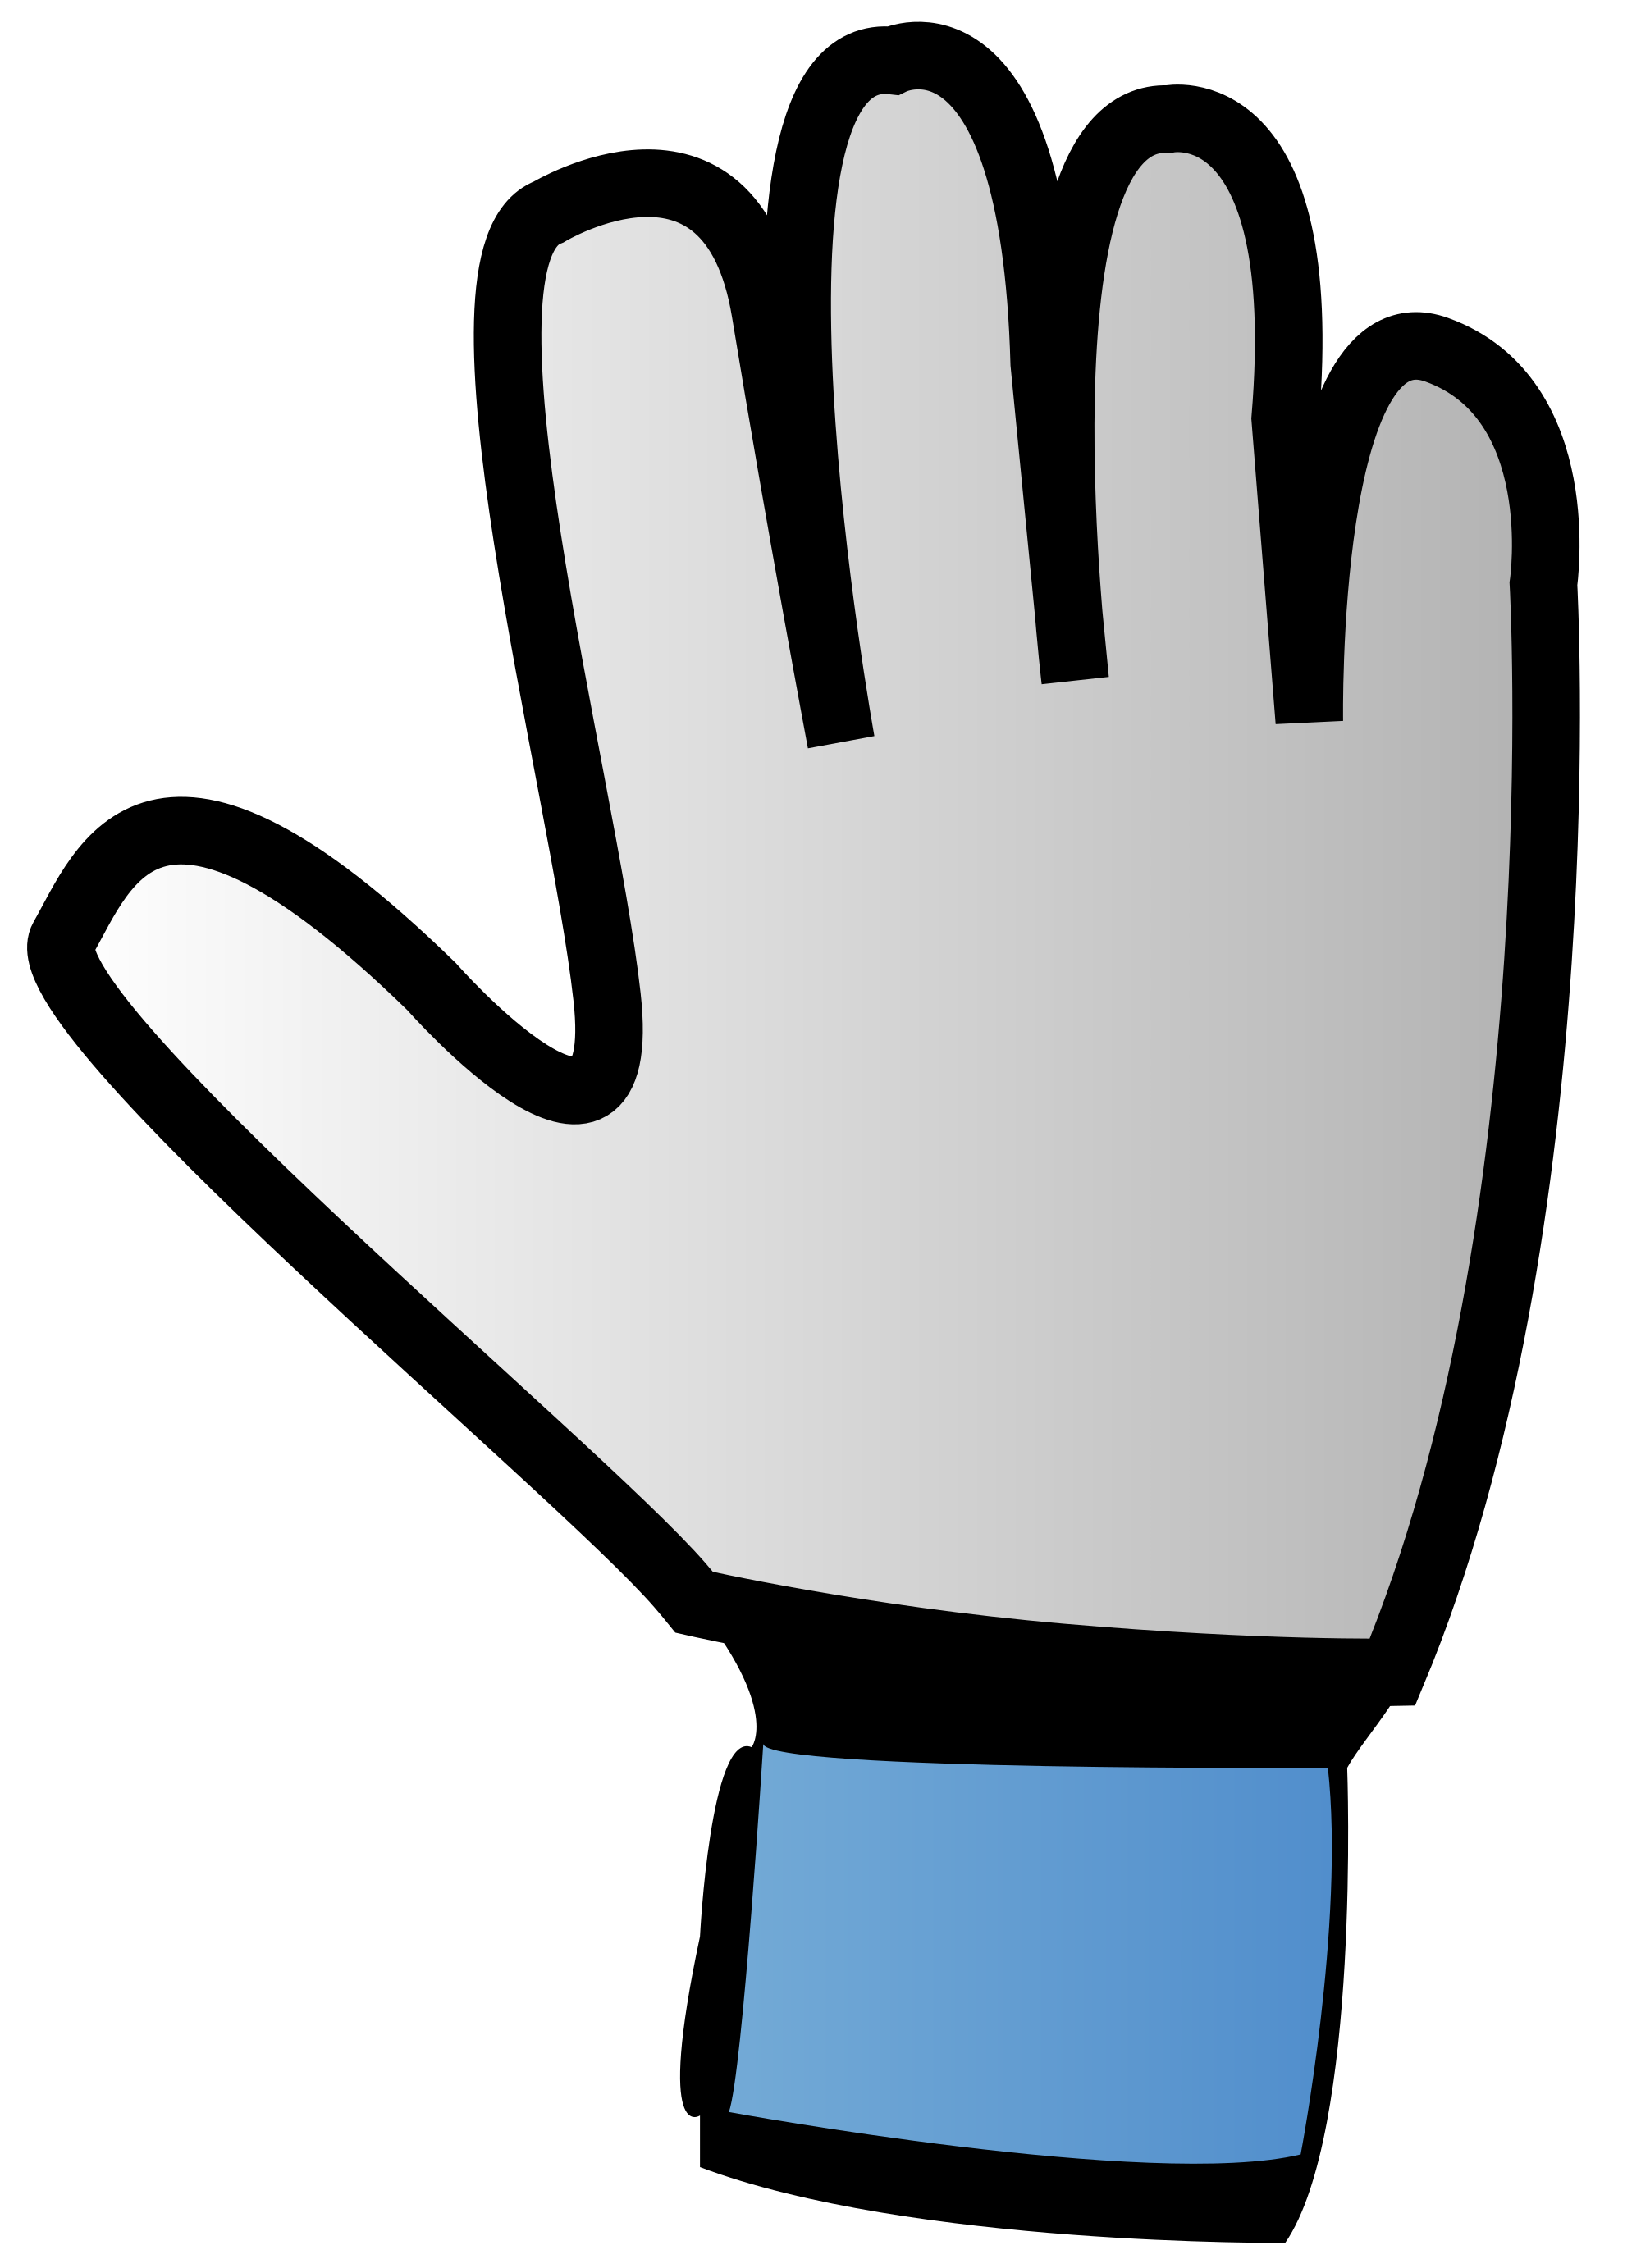 Football gloves clipart vector royalty free library File:Goalkeeper glove icon.svg - Wikimedia Commons vector royalty free library